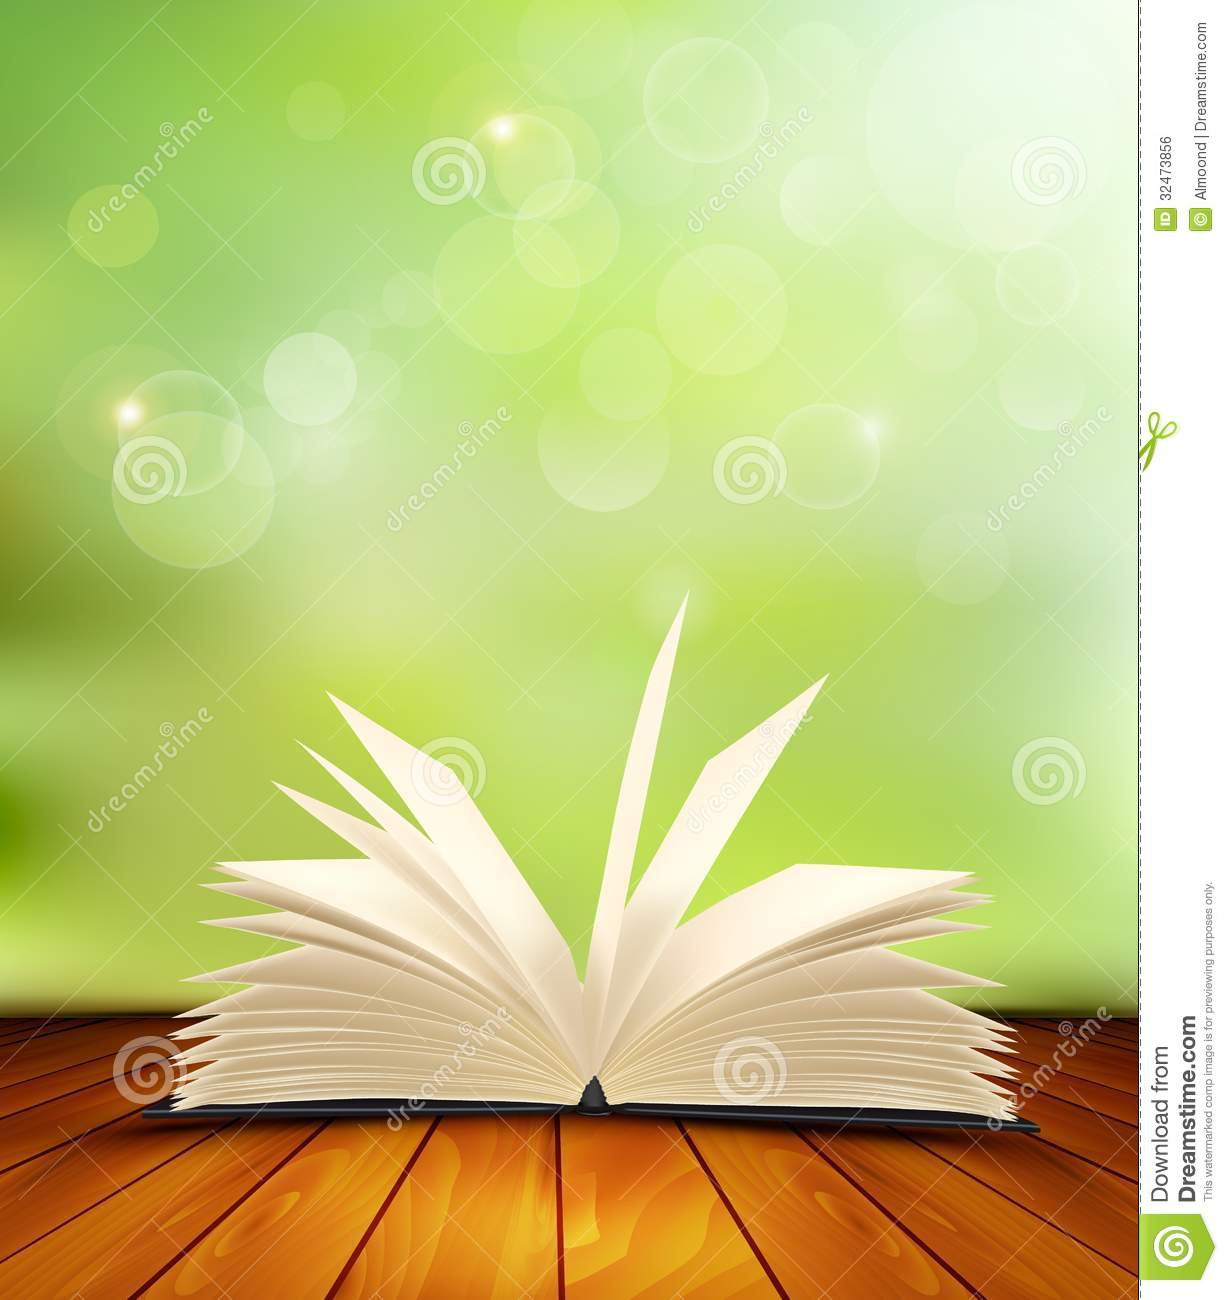 opened book wallpaper background - photo #46